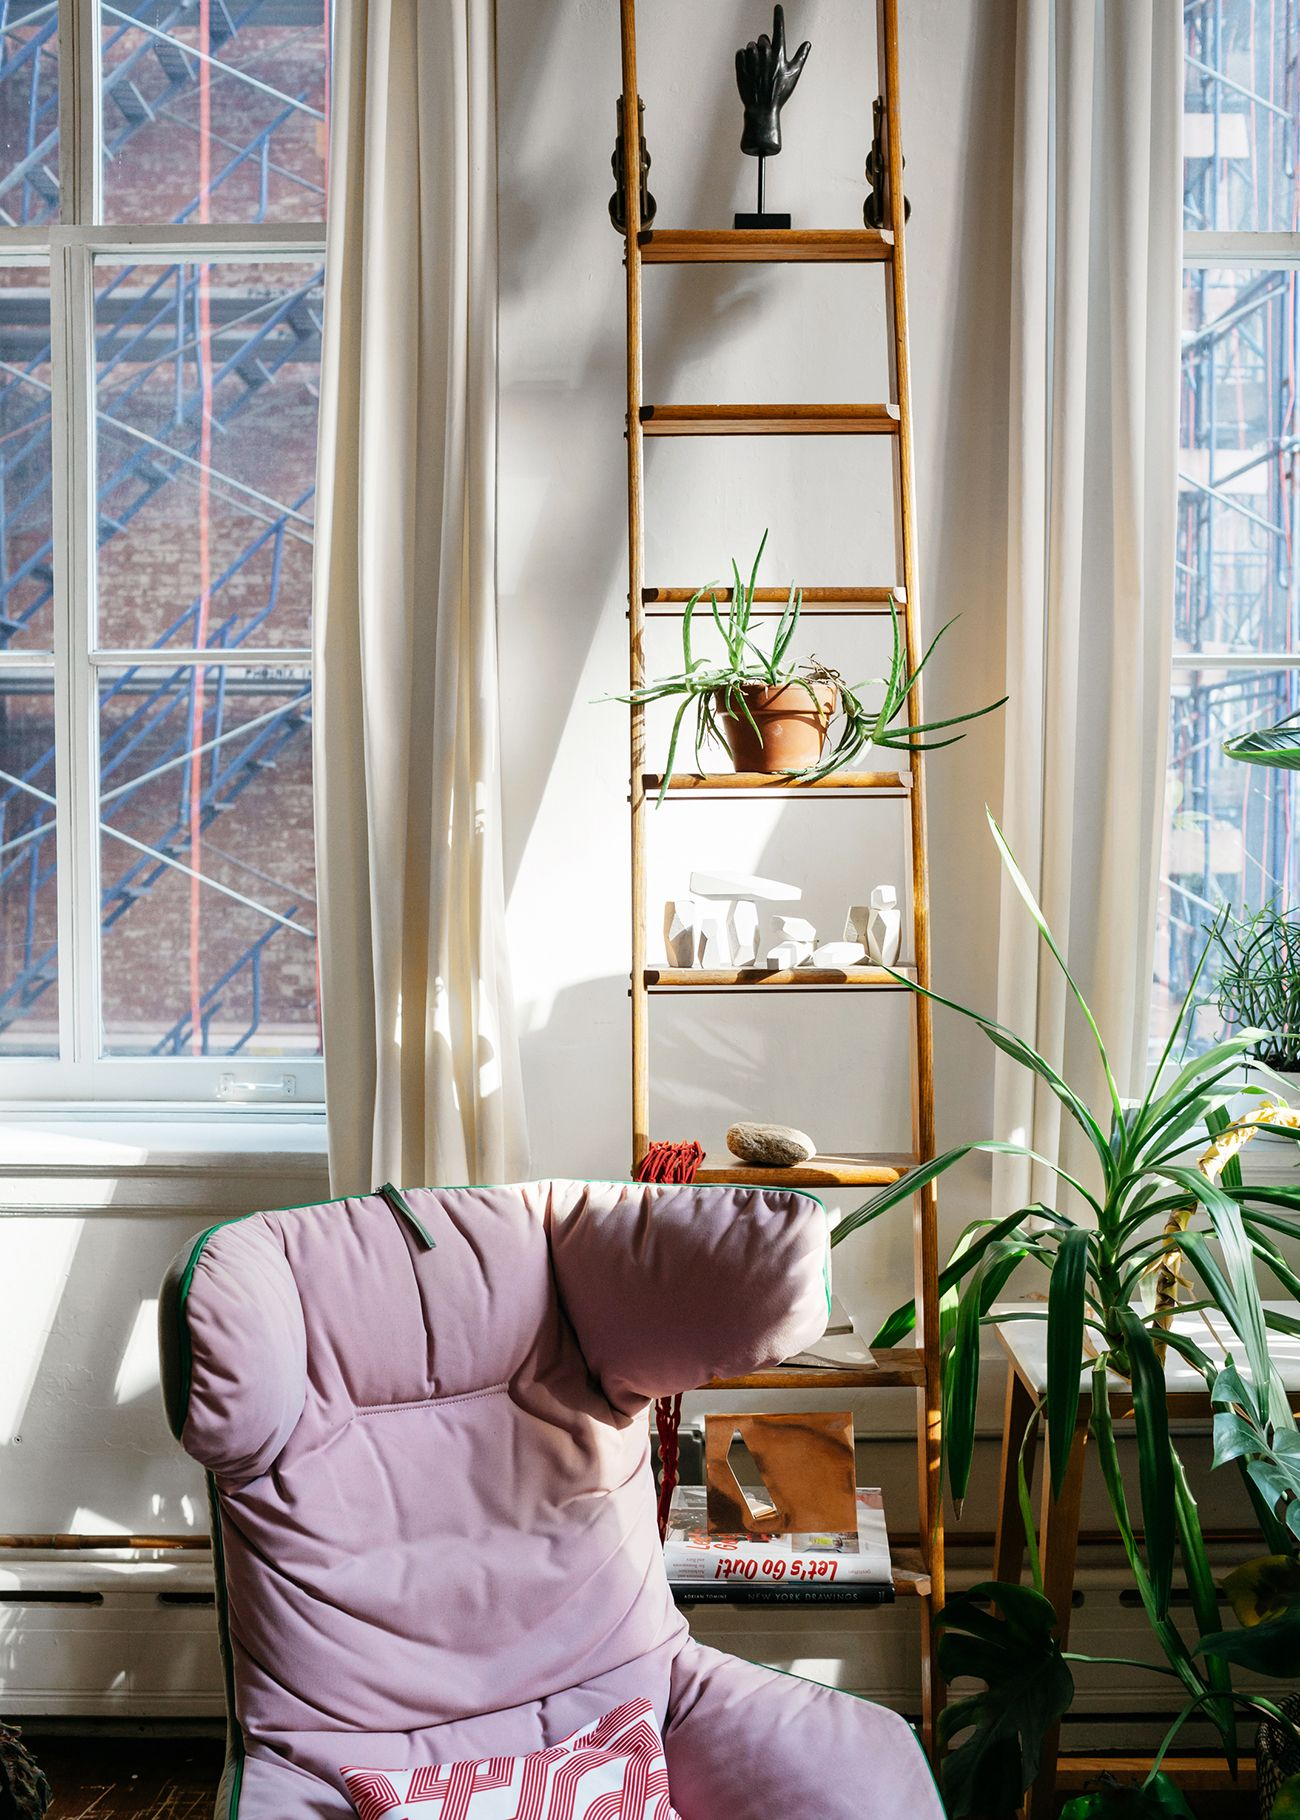 Pieterjan mattan tribeca home tour with hem bohemian interior house tours contemporary colorful